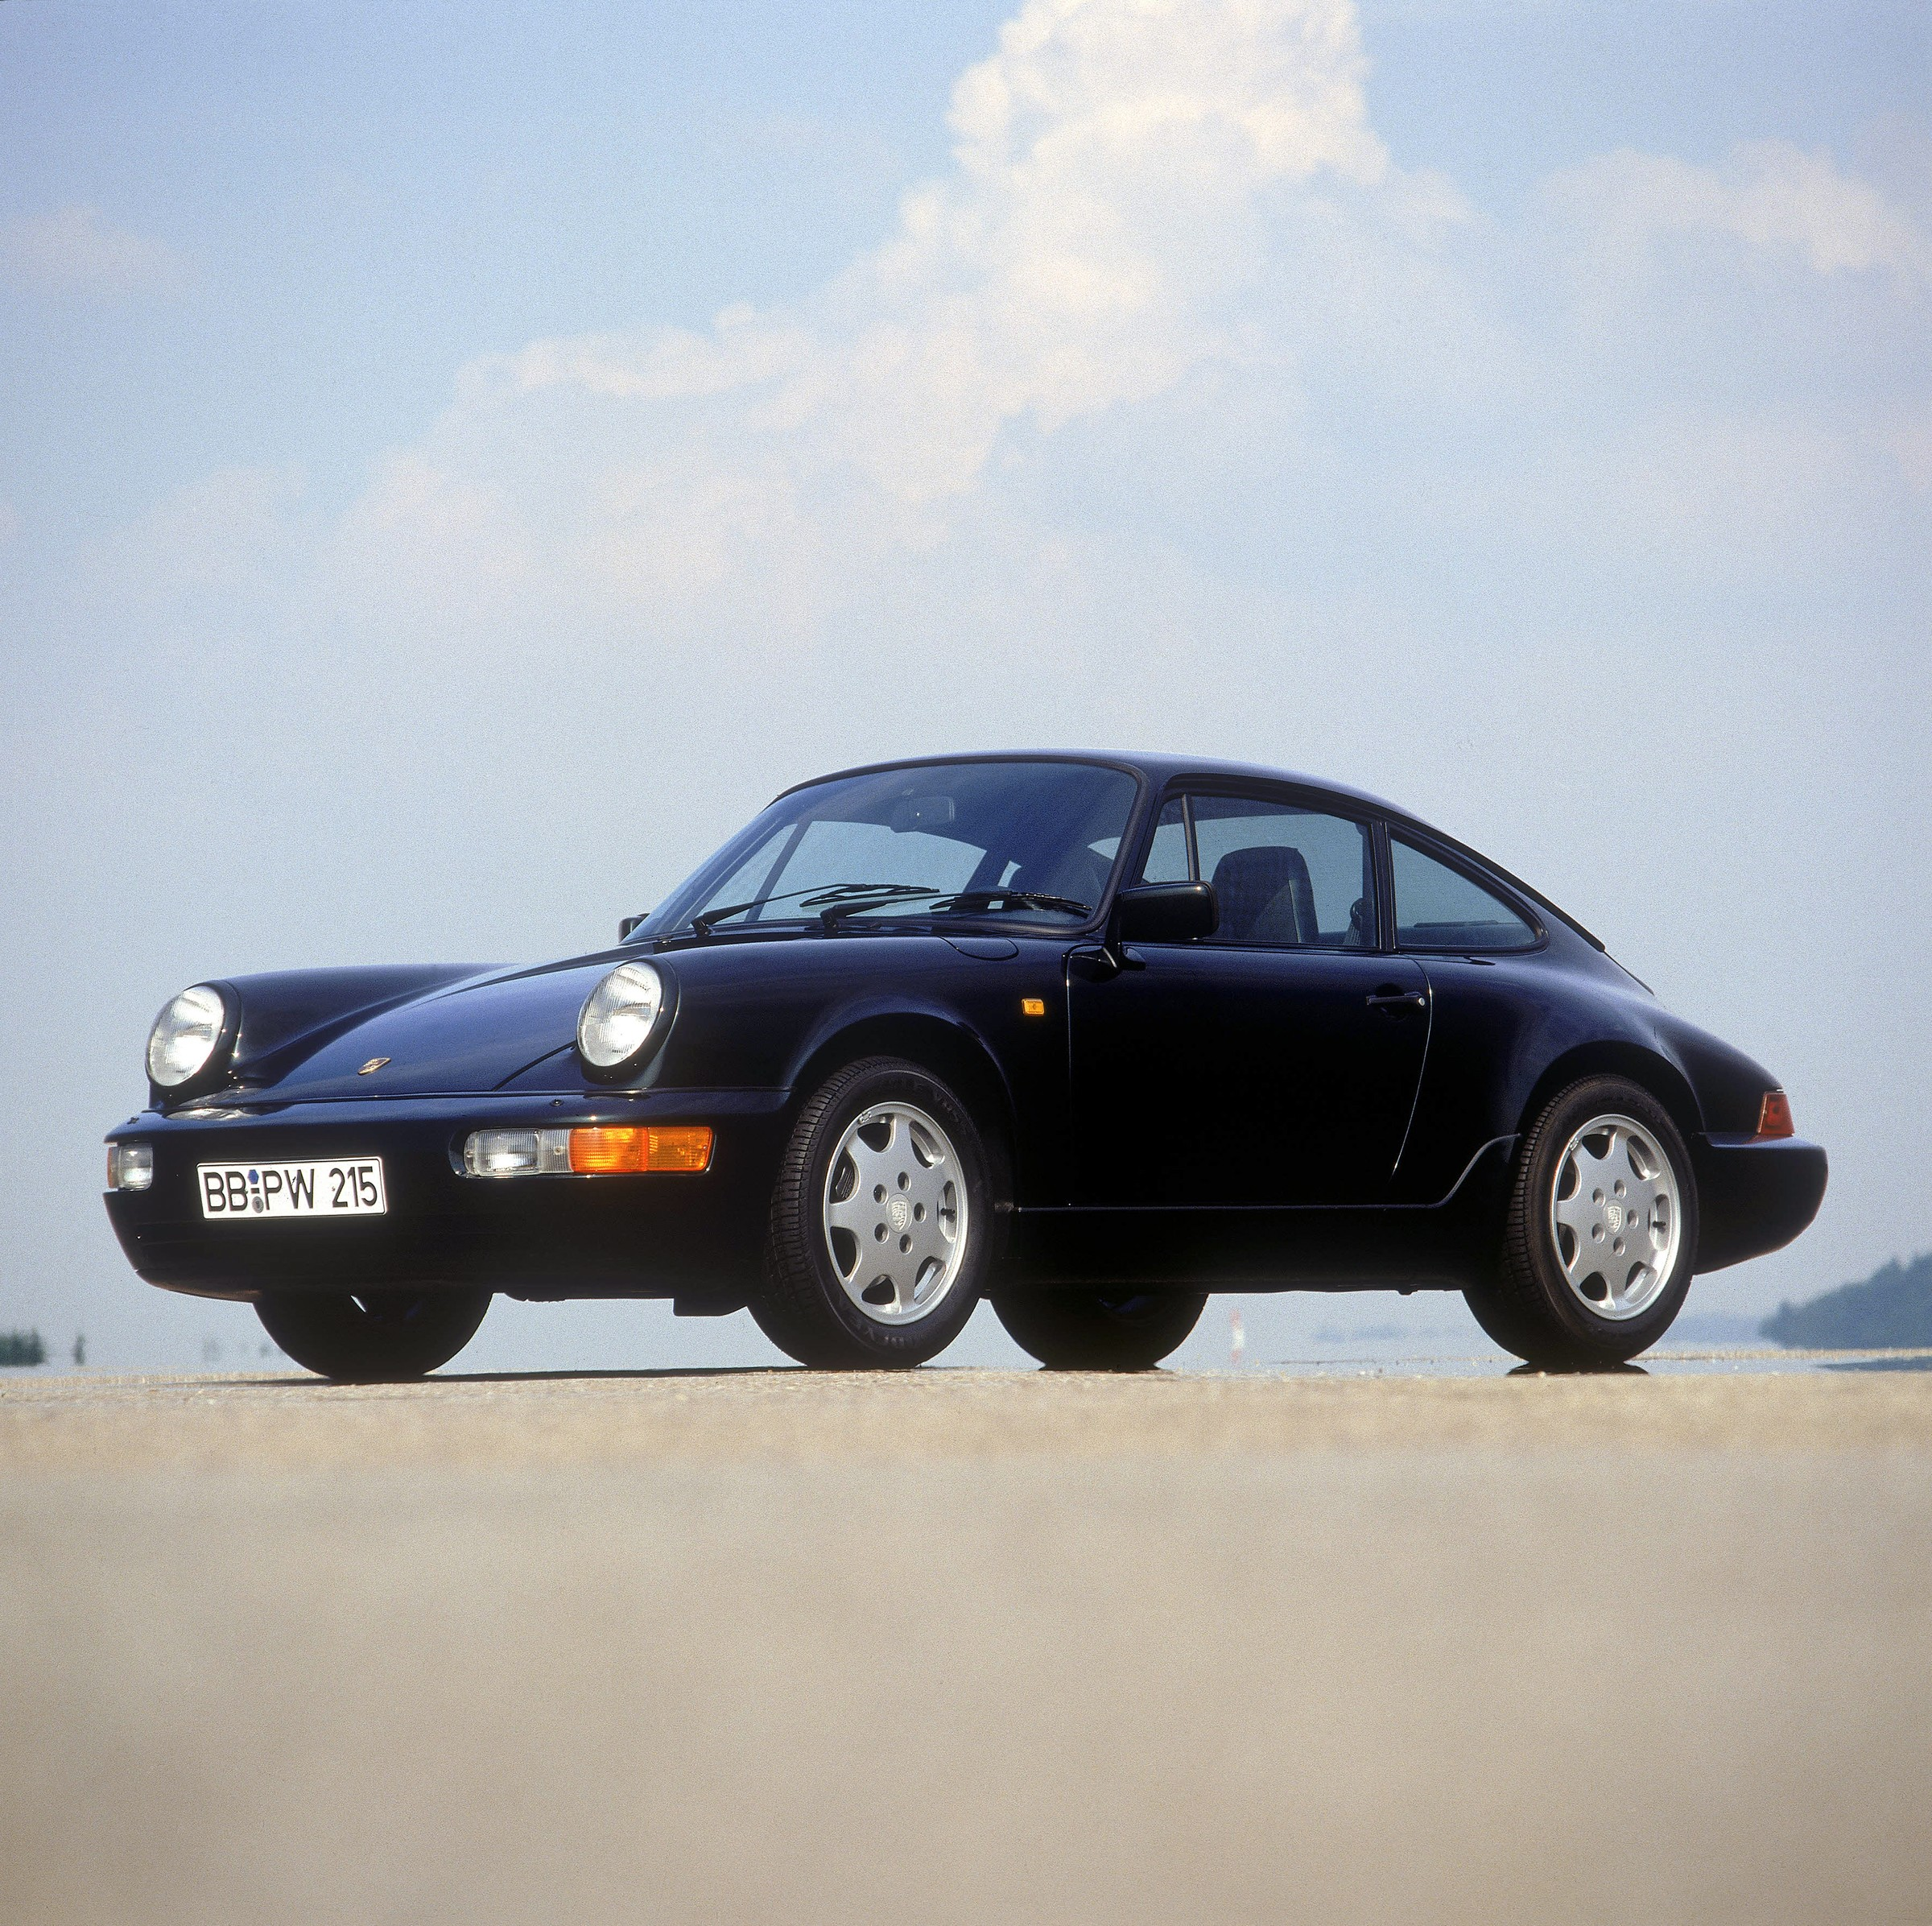 Porsche 911 V6 Horsepower: PORSCHE 911 Carrera 4 (964) Specs & Photos